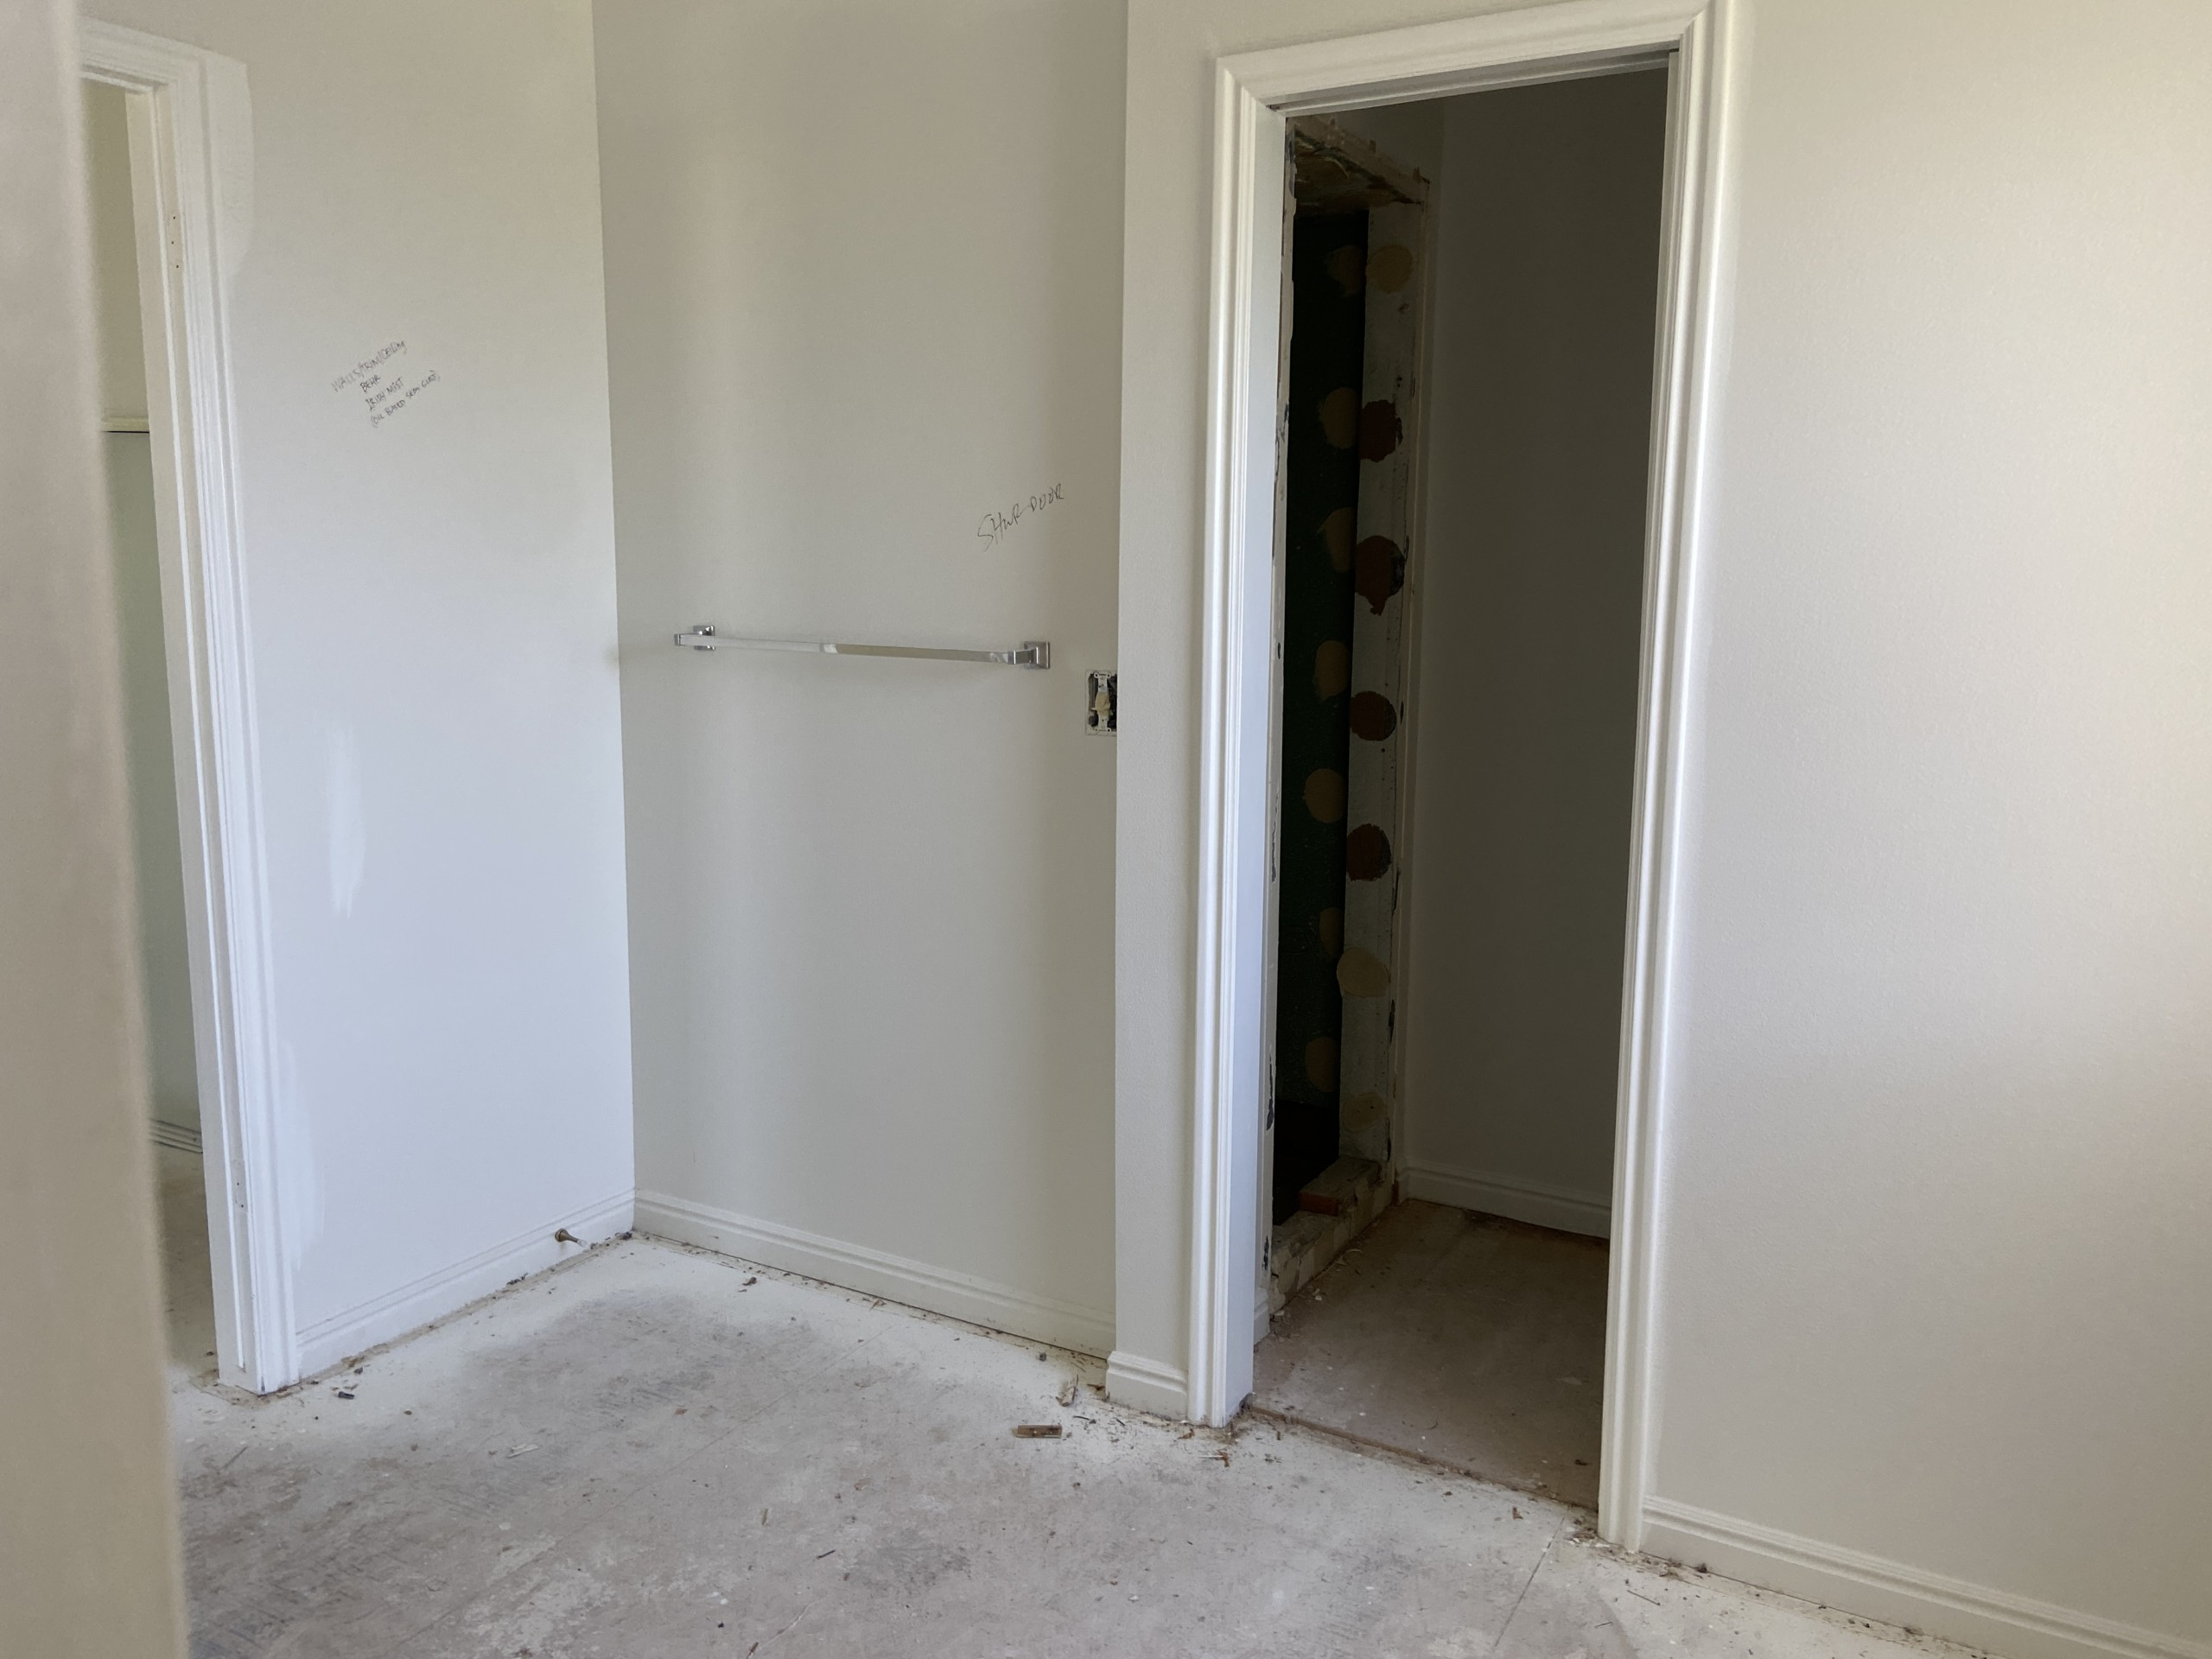 a blank, unfinished room with sheetrock walls and a dusty subfloor. There's a doorway that leads to a dark, grey space in the image